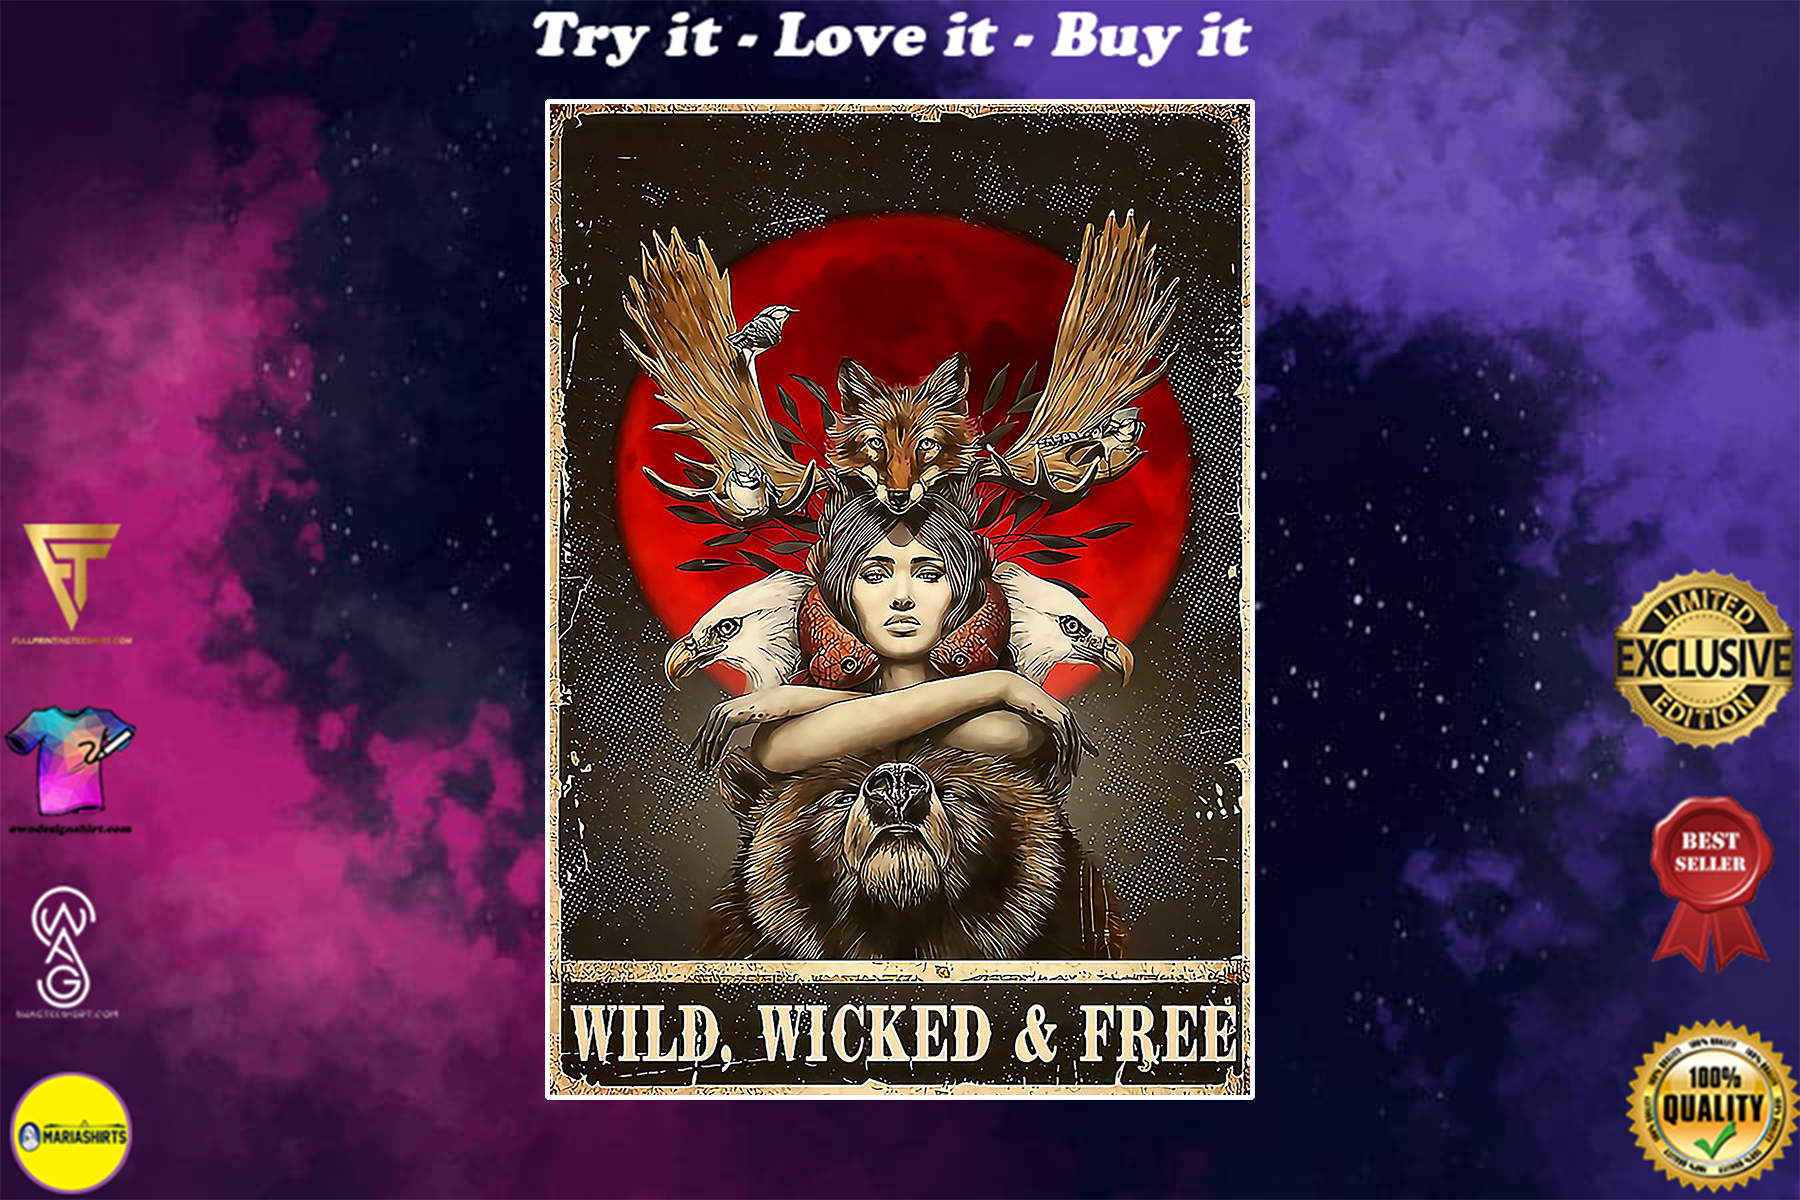 vintage wild wicked free poster